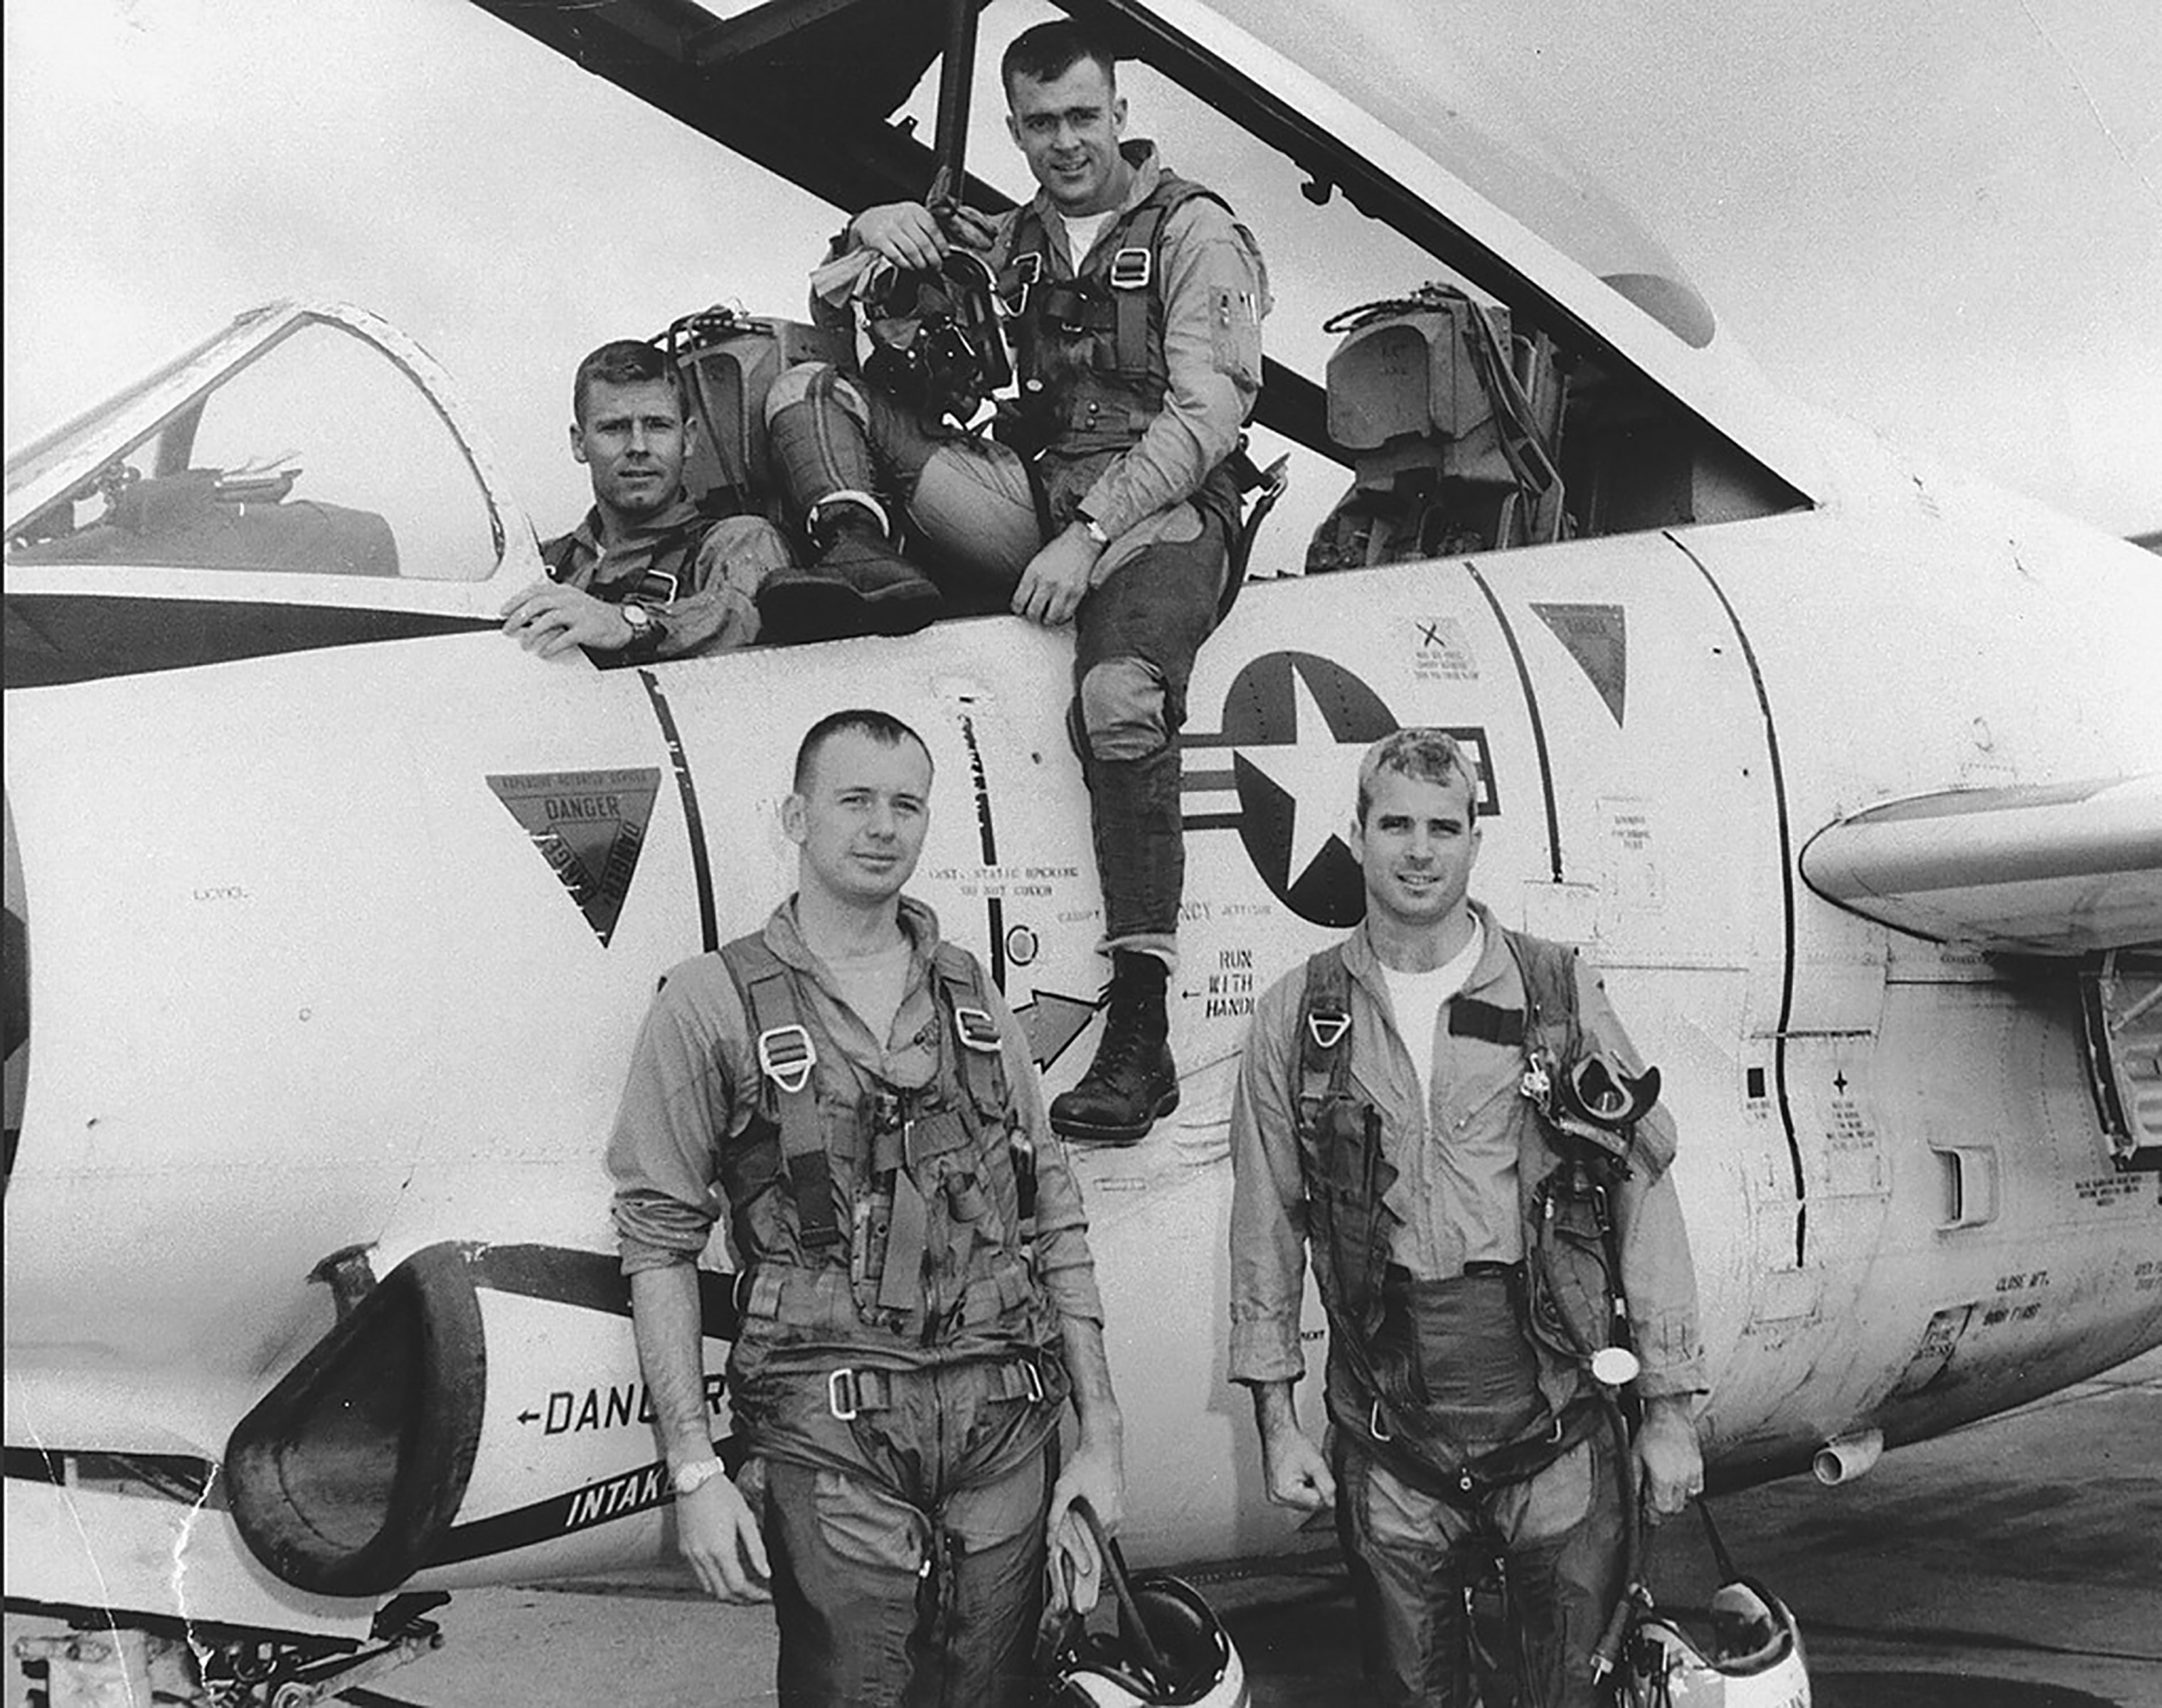 John McCain, (front, right) with his squadron in 1965.